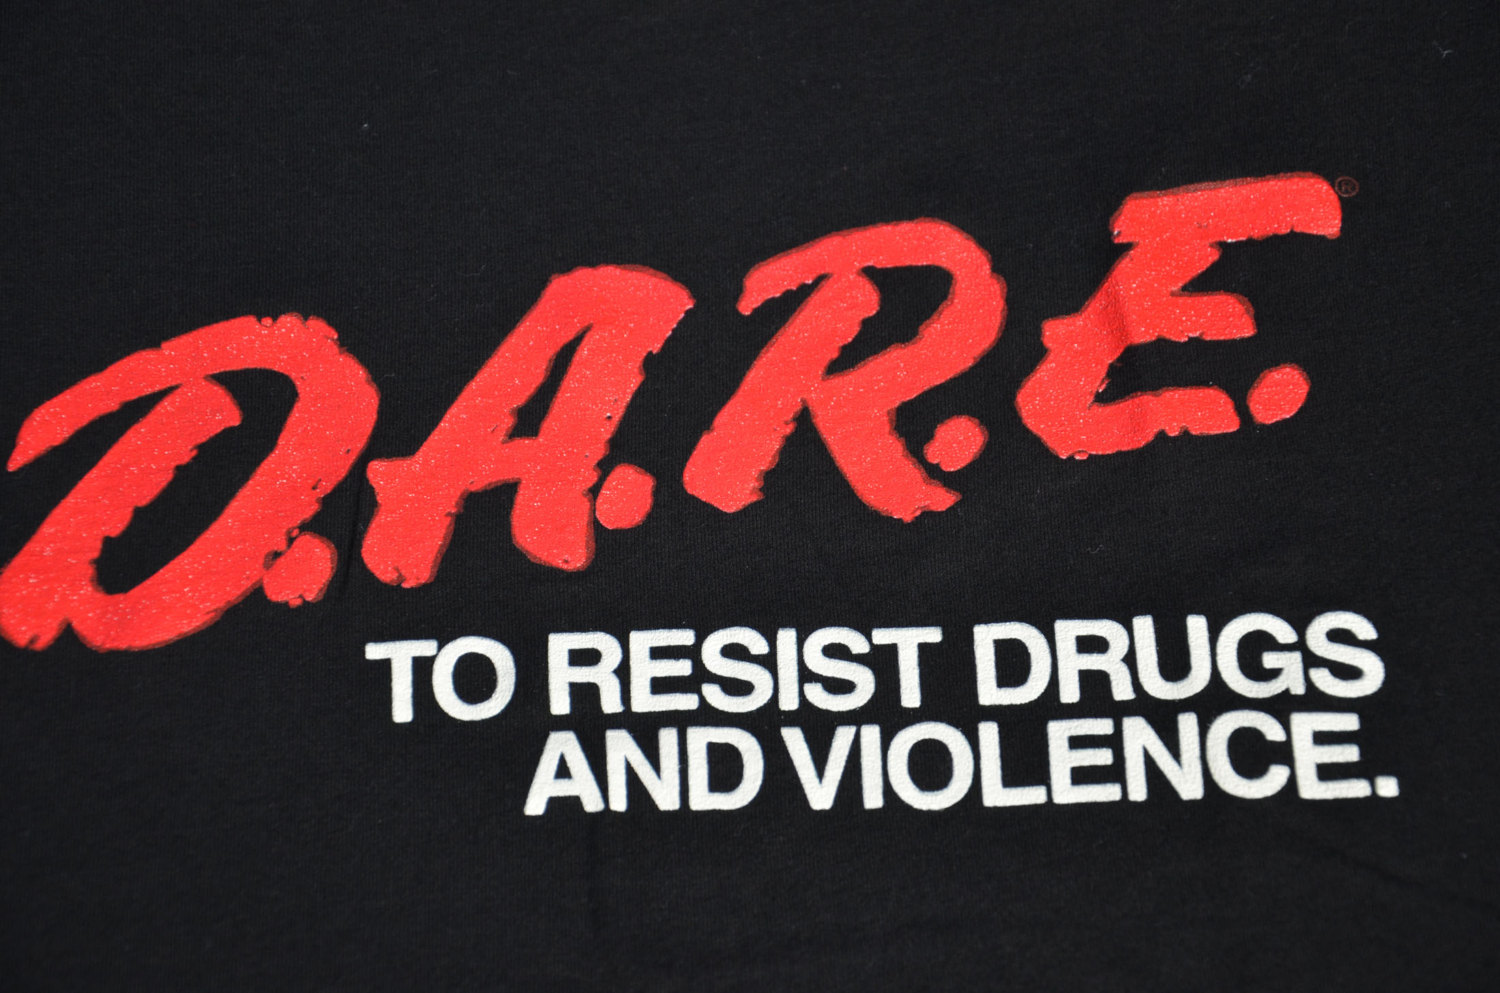 abuse d.a.r.e drug education essay resistance Drug abuse resistance education (dare the primary goals of dare® are to prevent substance abuse among schoolchildren and drug and violence prevention.